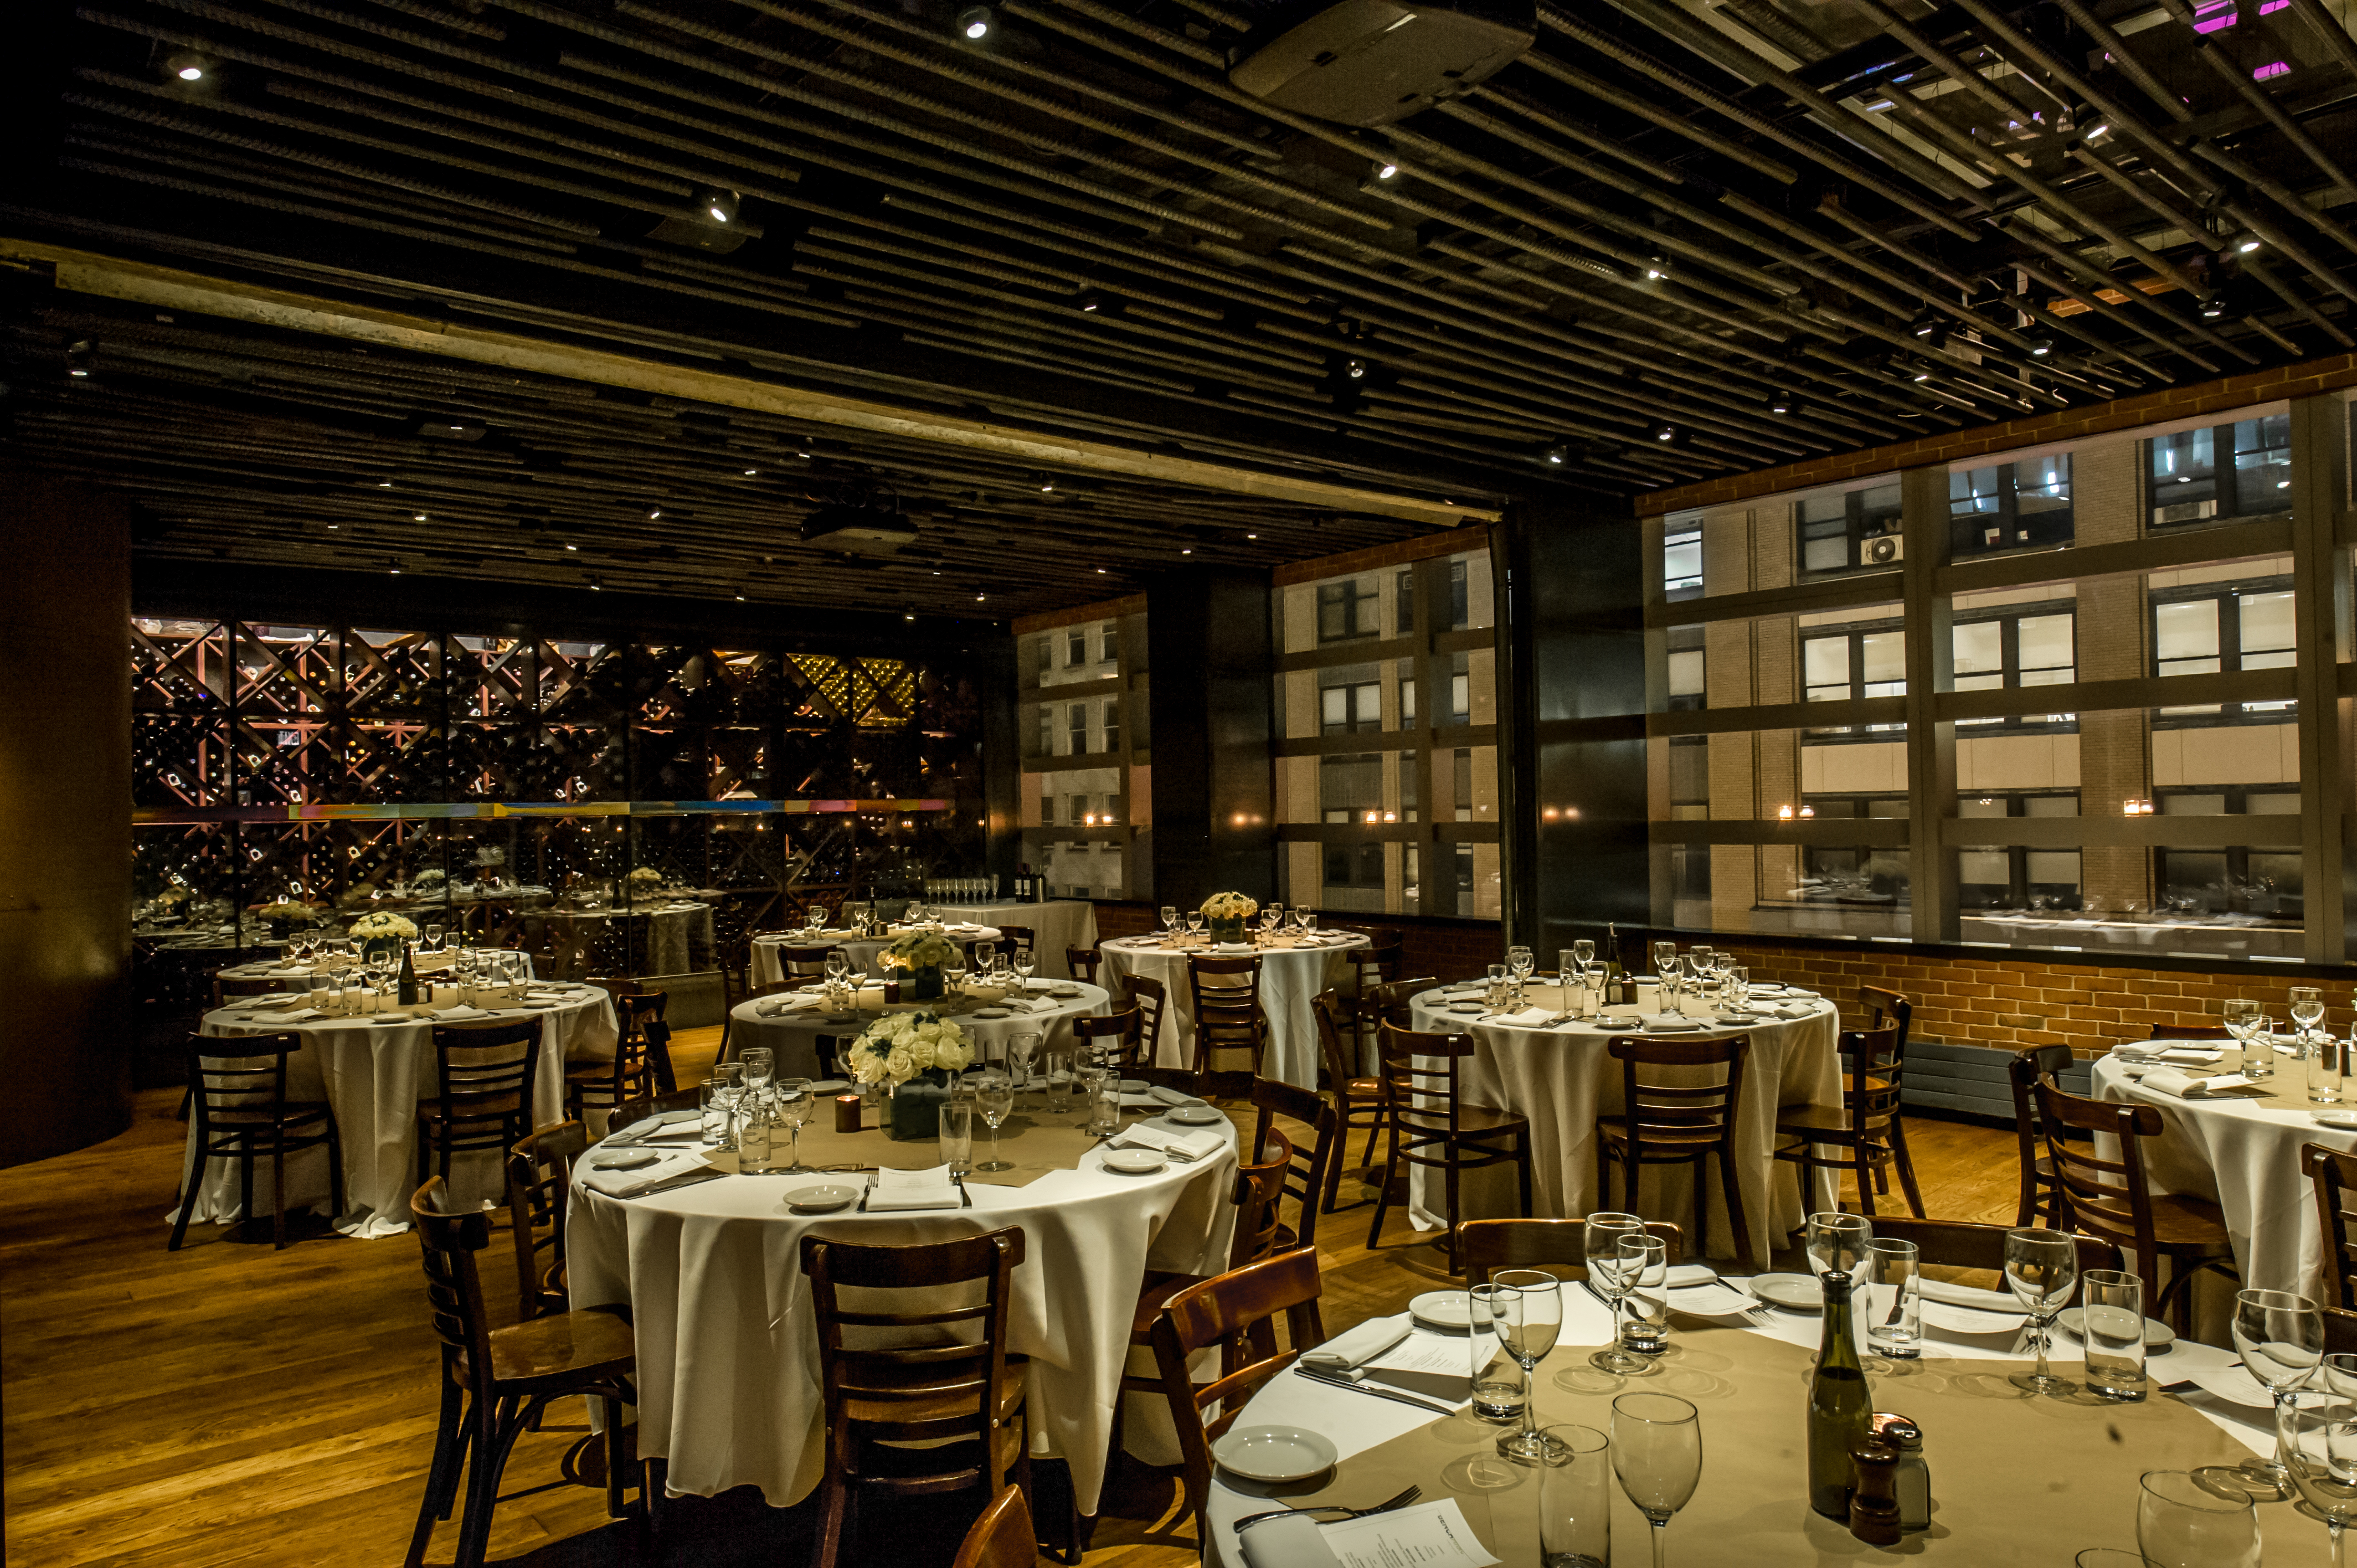 Photo #3 East + West Wine Room at landmarc [at the time warner center]